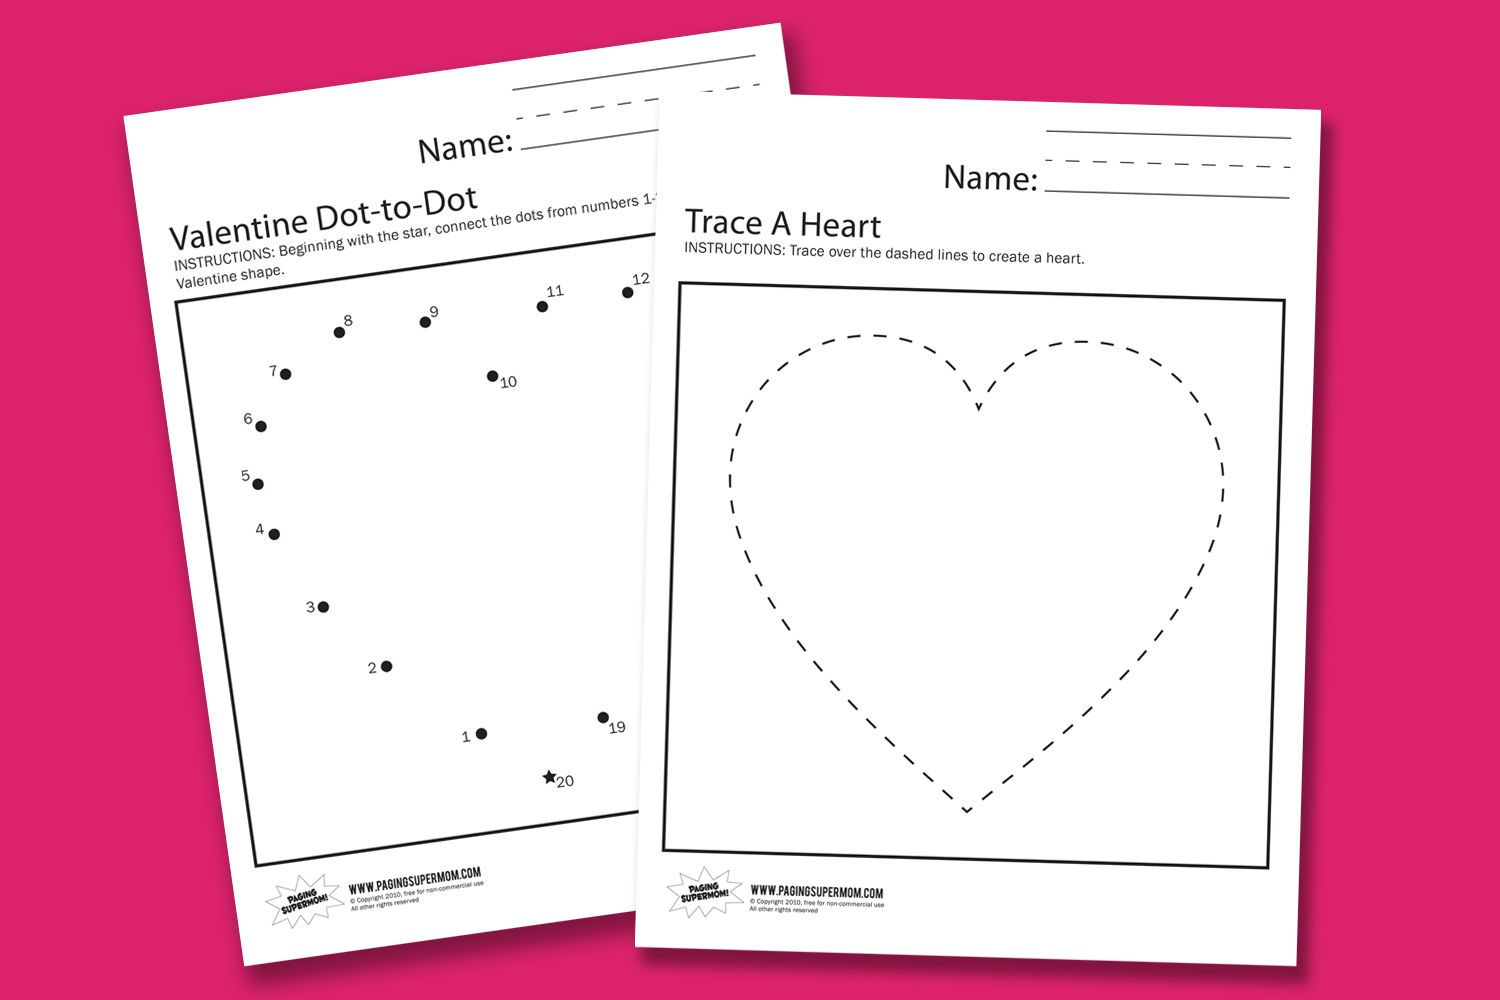 Free printable valentines day worksheets worksheets for our youngest superkids and a valentine s day dot to dot